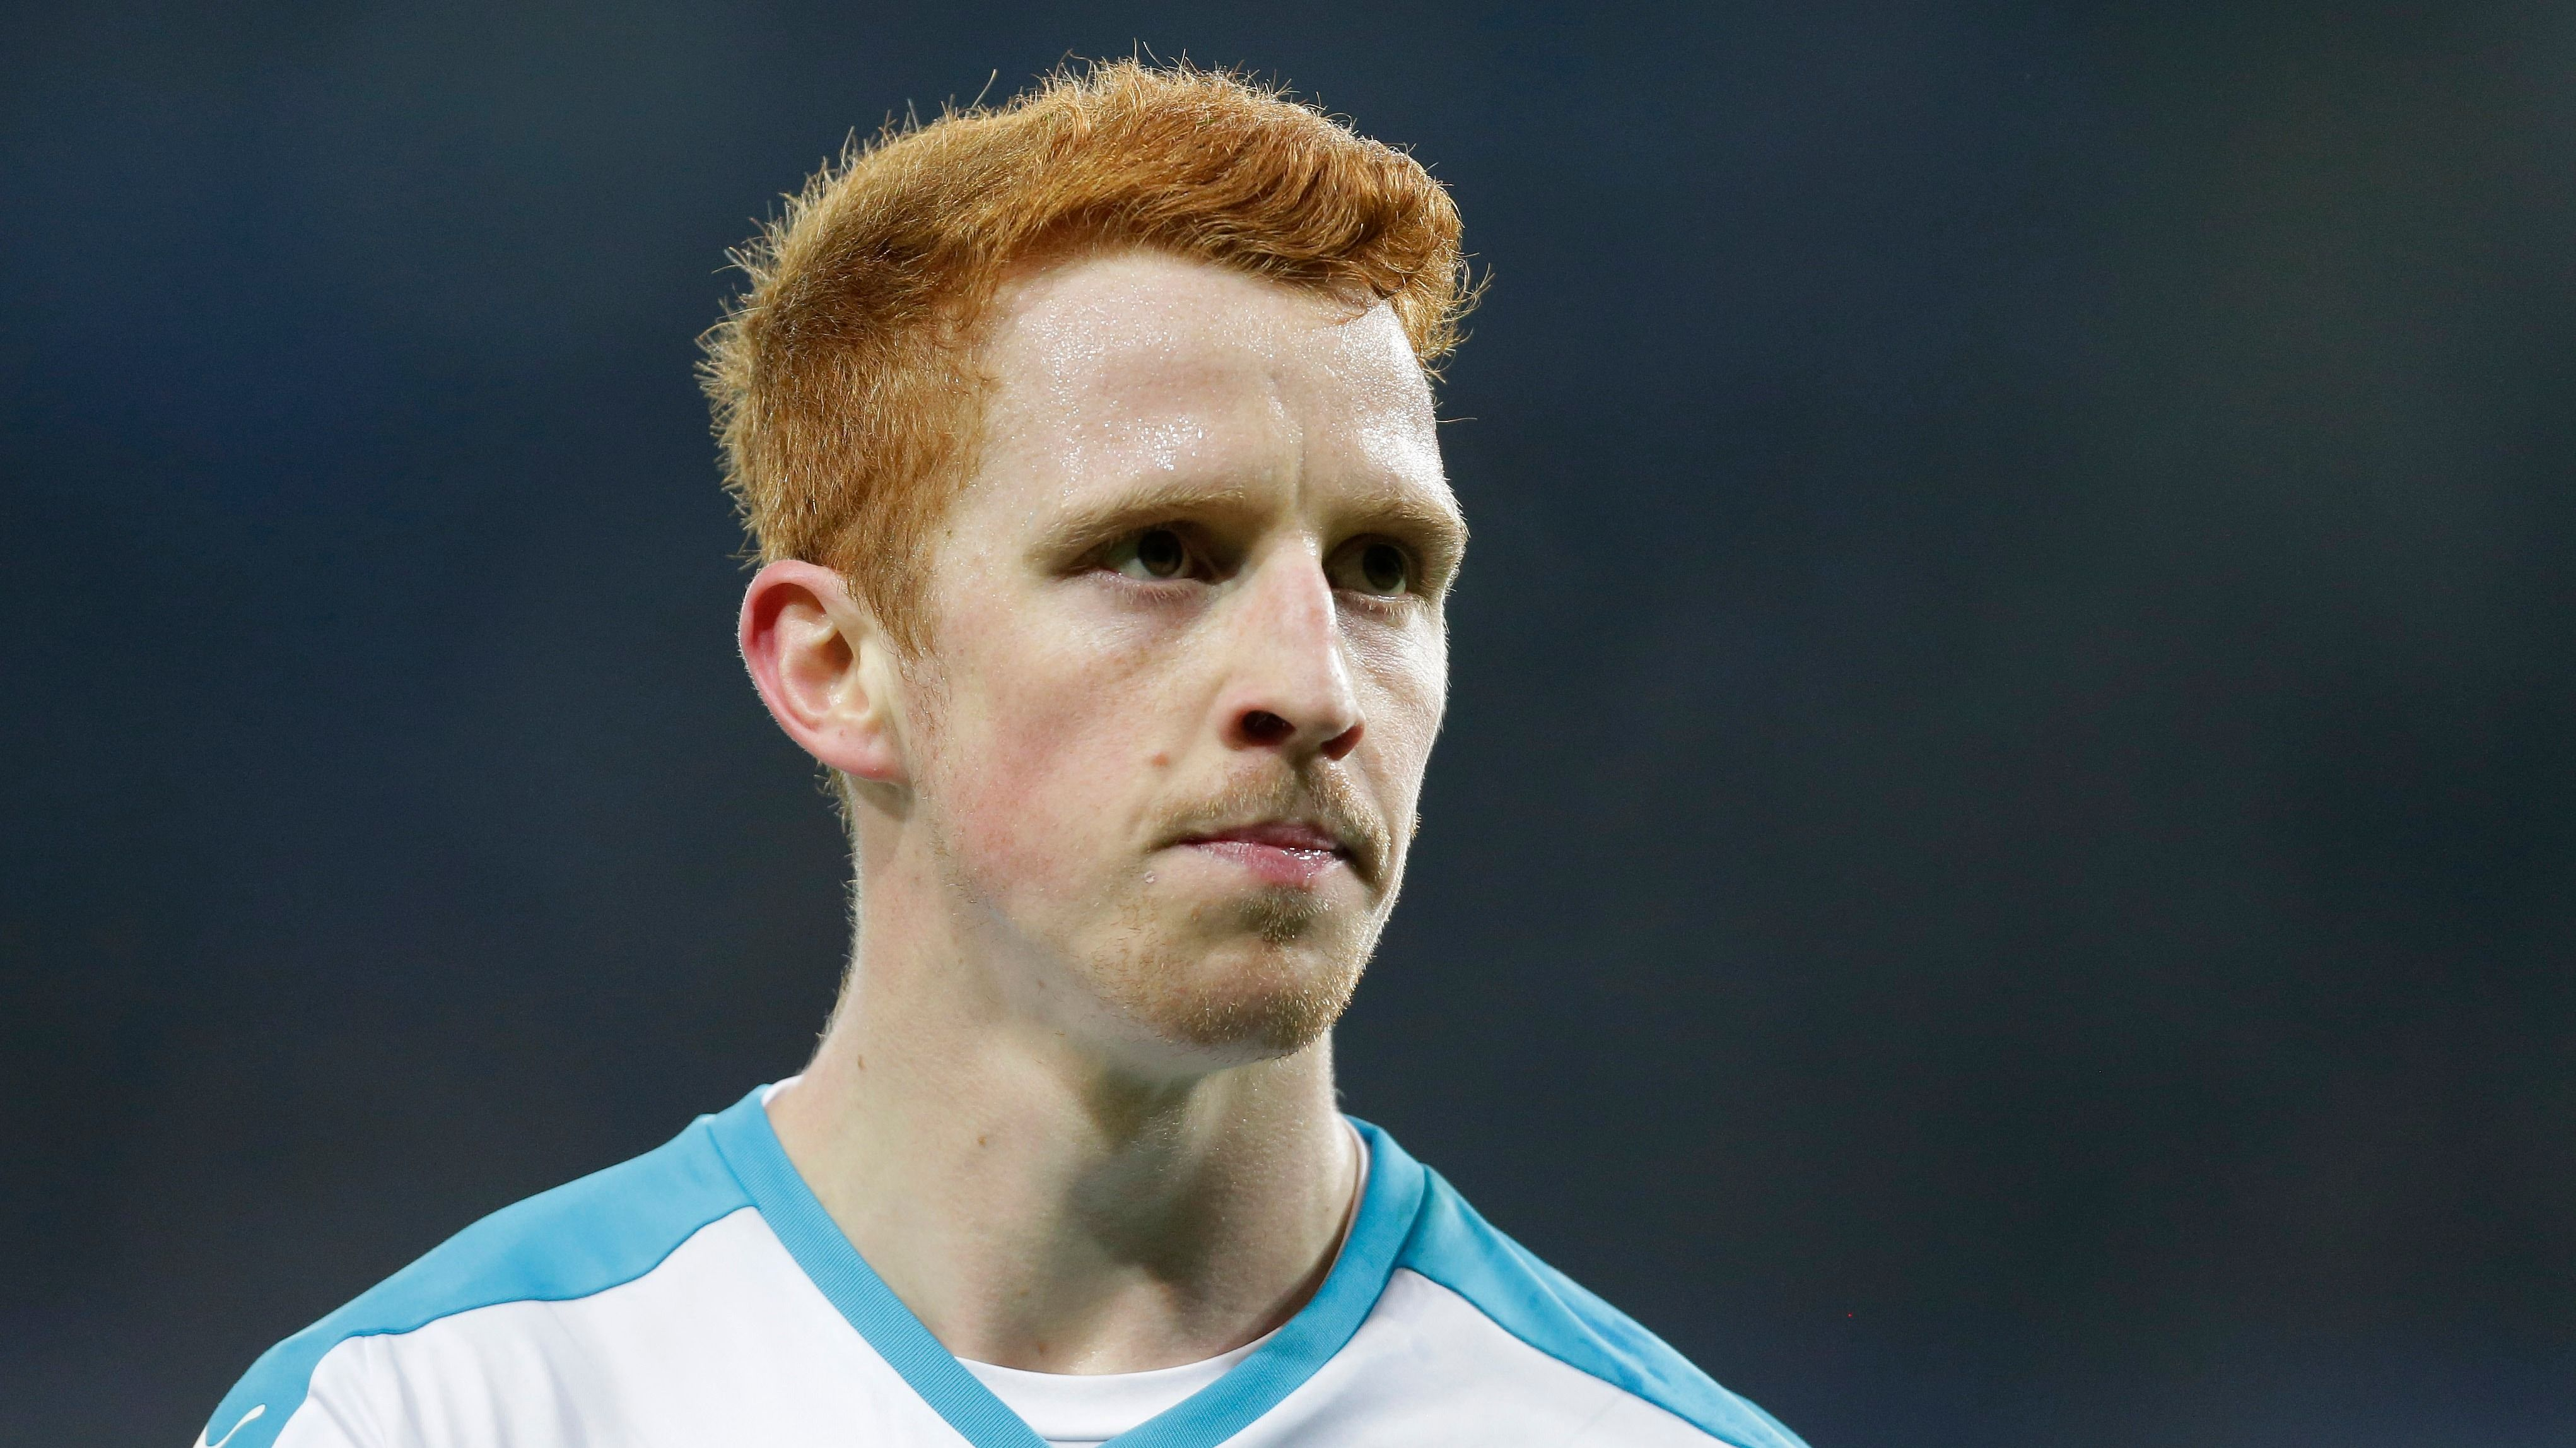 Newcastle midfielder Jack Colback is being investigated over allegedly breaking betting rules